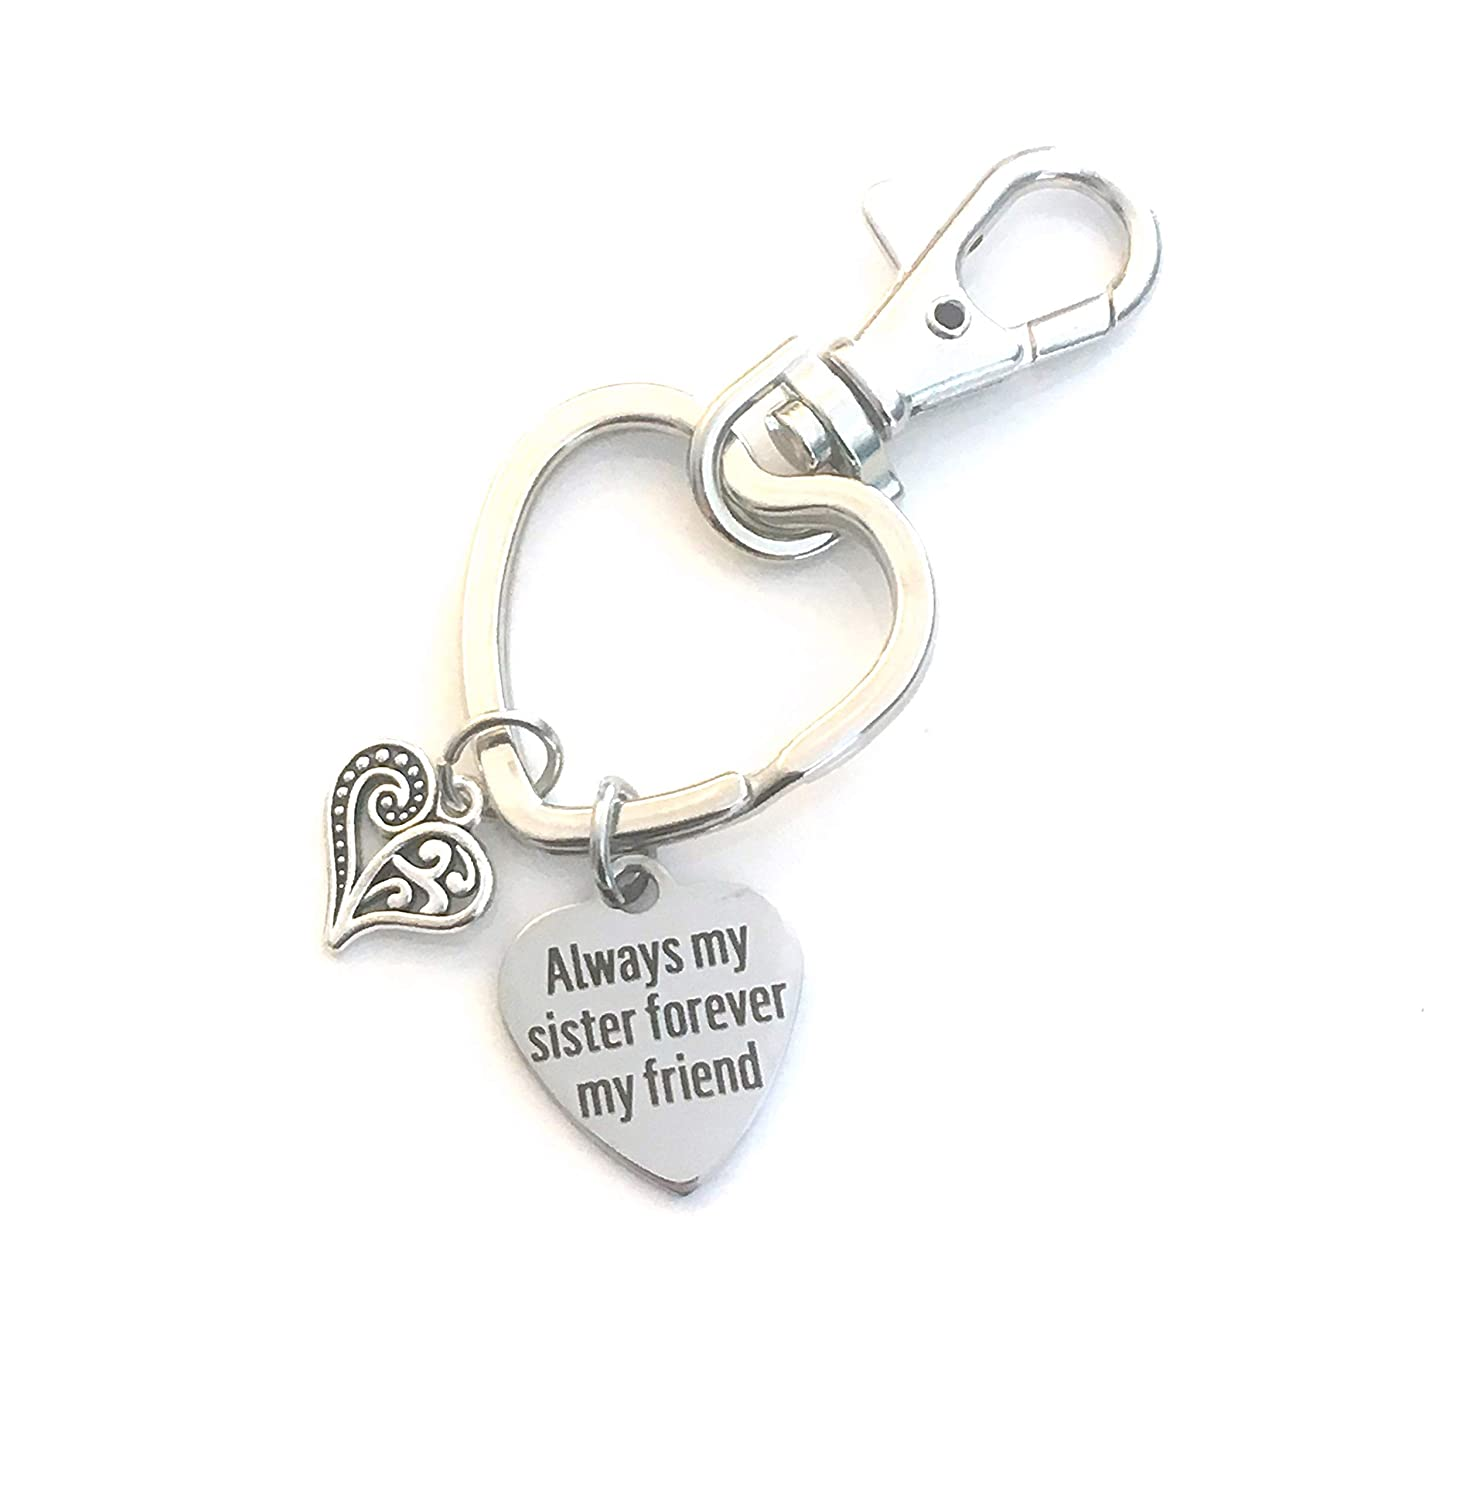 Sister Keychain, Always my sister forever my friend, Gift for Sis Key Chain - Women